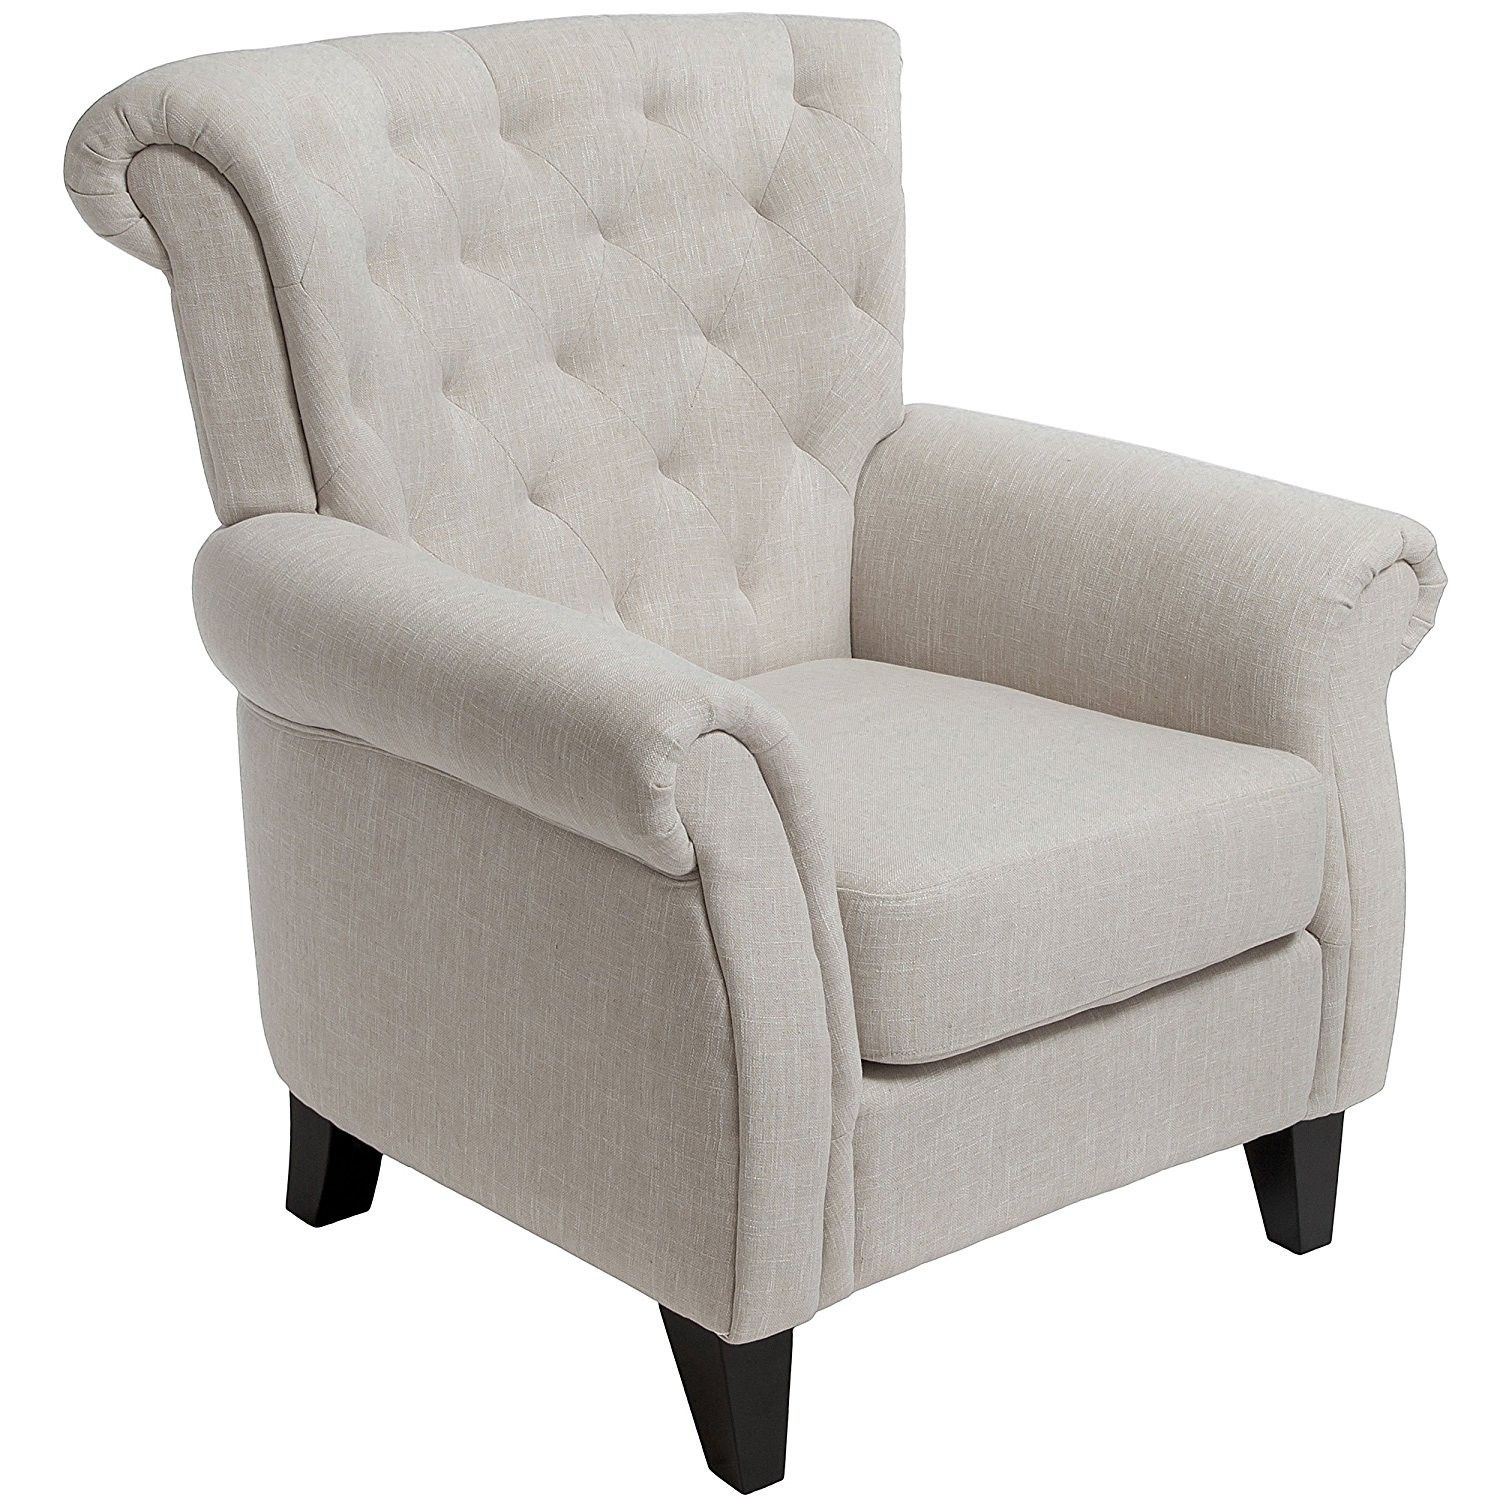 Small Chairs For Bedroom Arm Chair Small Bedroom Chairs Ikea Small Accent Chair With